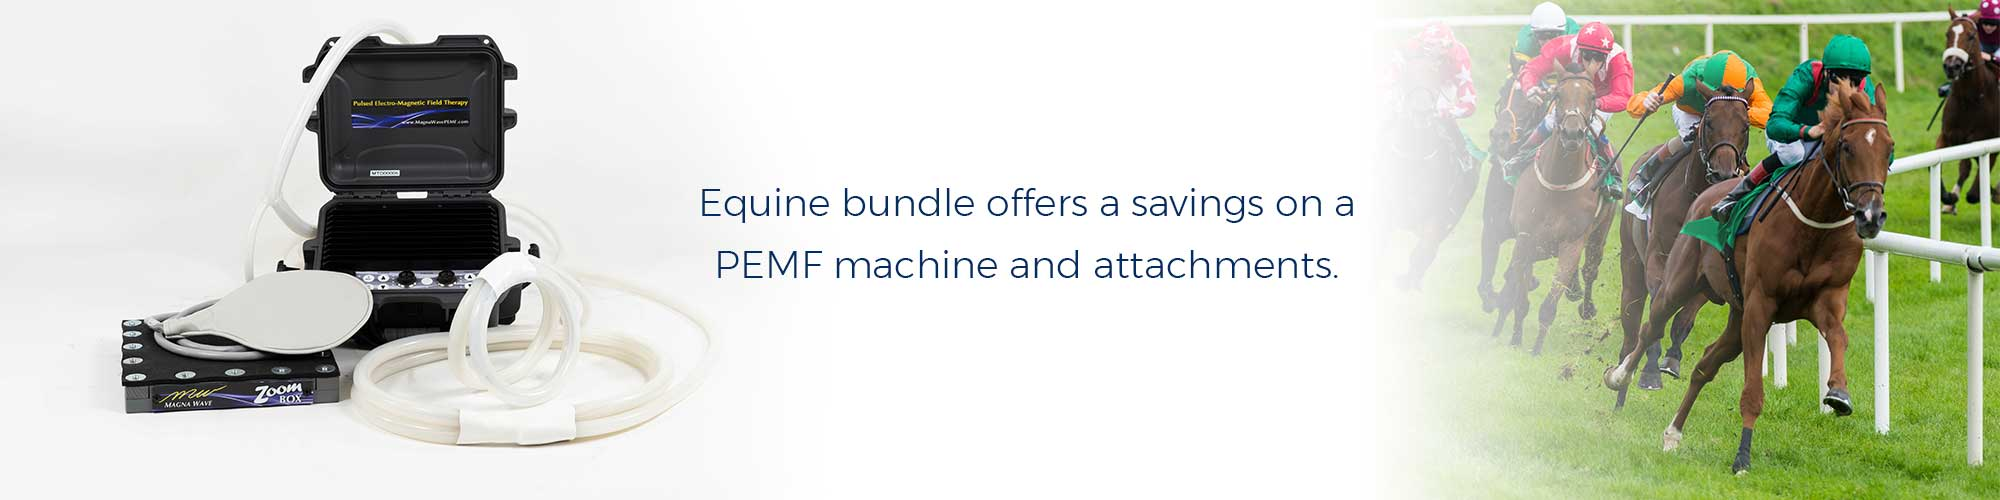 Equine bundle offers a savings on a PEMF machine and attachments